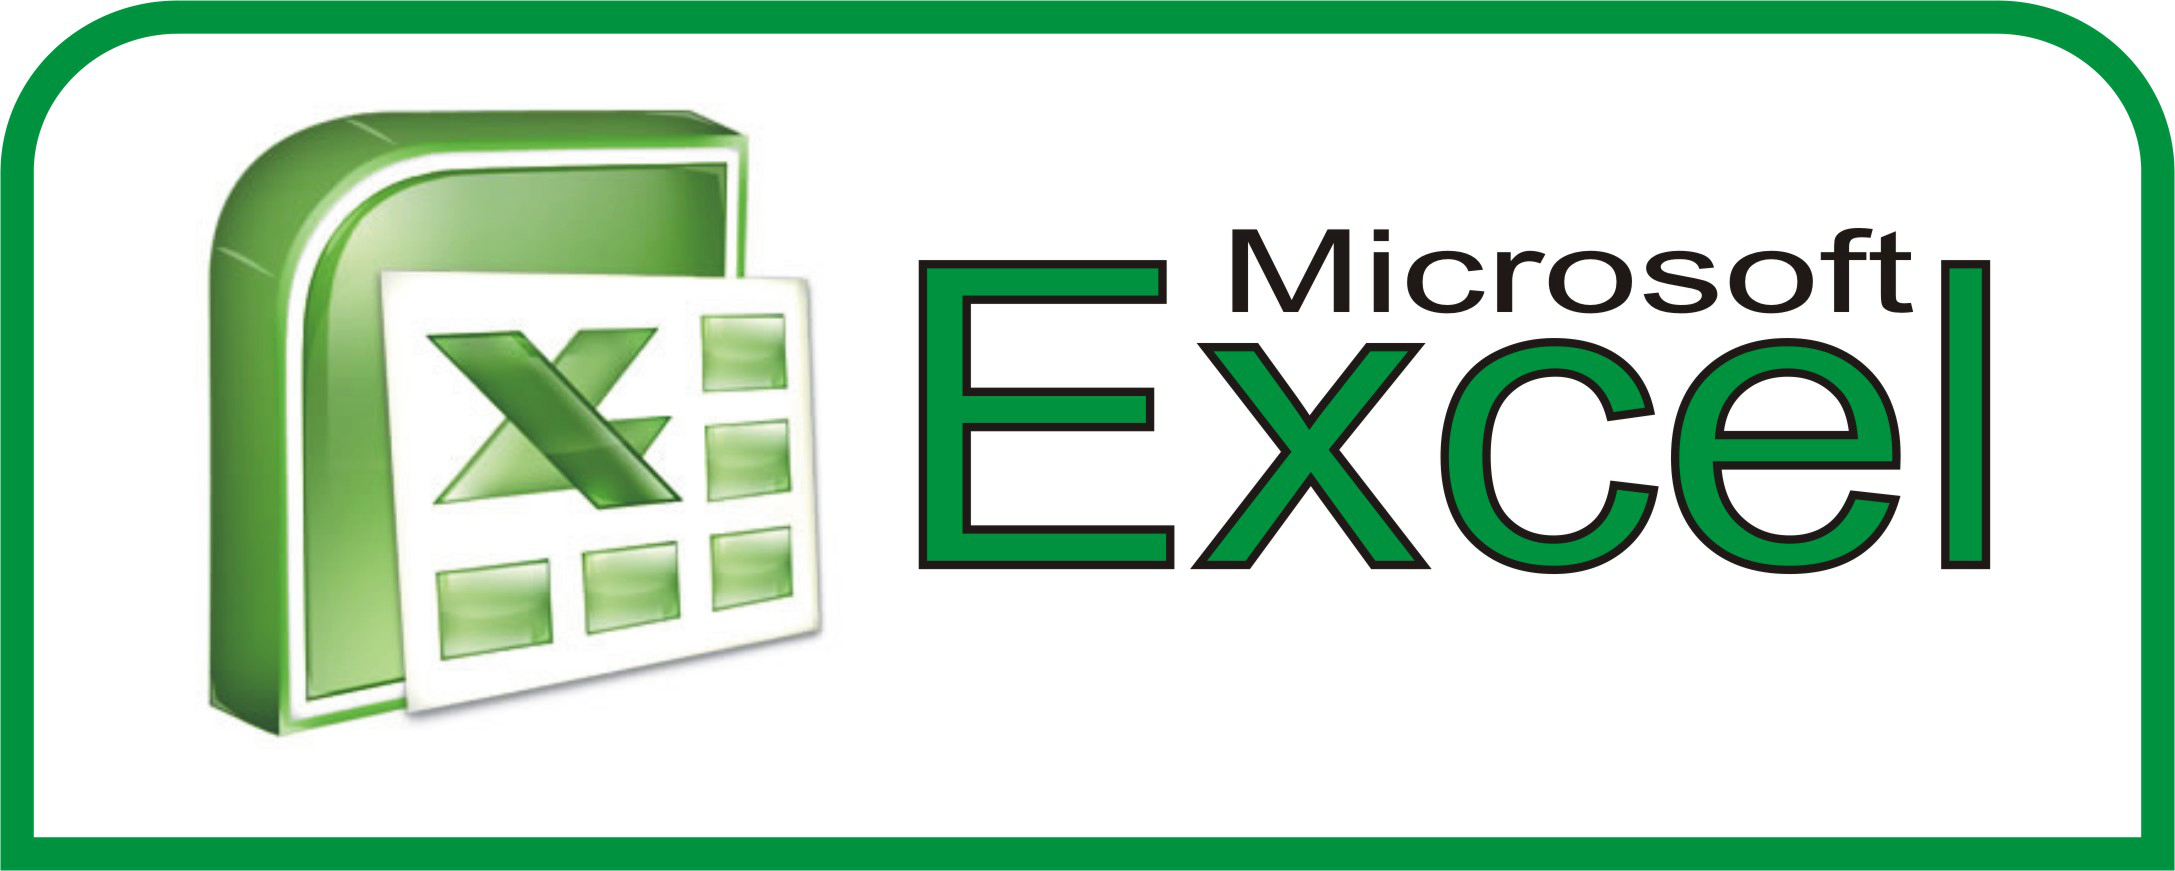 Ediblewildsus  Inspiring  Excel Shortcuts You Probably Didnt Know About  Techdissected With Lovely Excel Vba Function Return Array Besides Diameter Symbol In Excel Furthermore Distinct Excel With Beauteous List Box Excel Also Excel Sqrt In Addition Excel For Apple Mac And If Formulas Excel As Well As Blank Cell Excel Additionally Wedding Guest List Excel Template From Techdissectedcom With Ediblewildsus  Lovely  Excel Shortcuts You Probably Didnt Know About  Techdissected With Beauteous Excel Vba Function Return Array Besides Diameter Symbol In Excel Furthermore Distinct Excel And Inspiring List Box Excel Also Excel Sqrt In Addition Excel For Apple Mac From Techdissectedcom